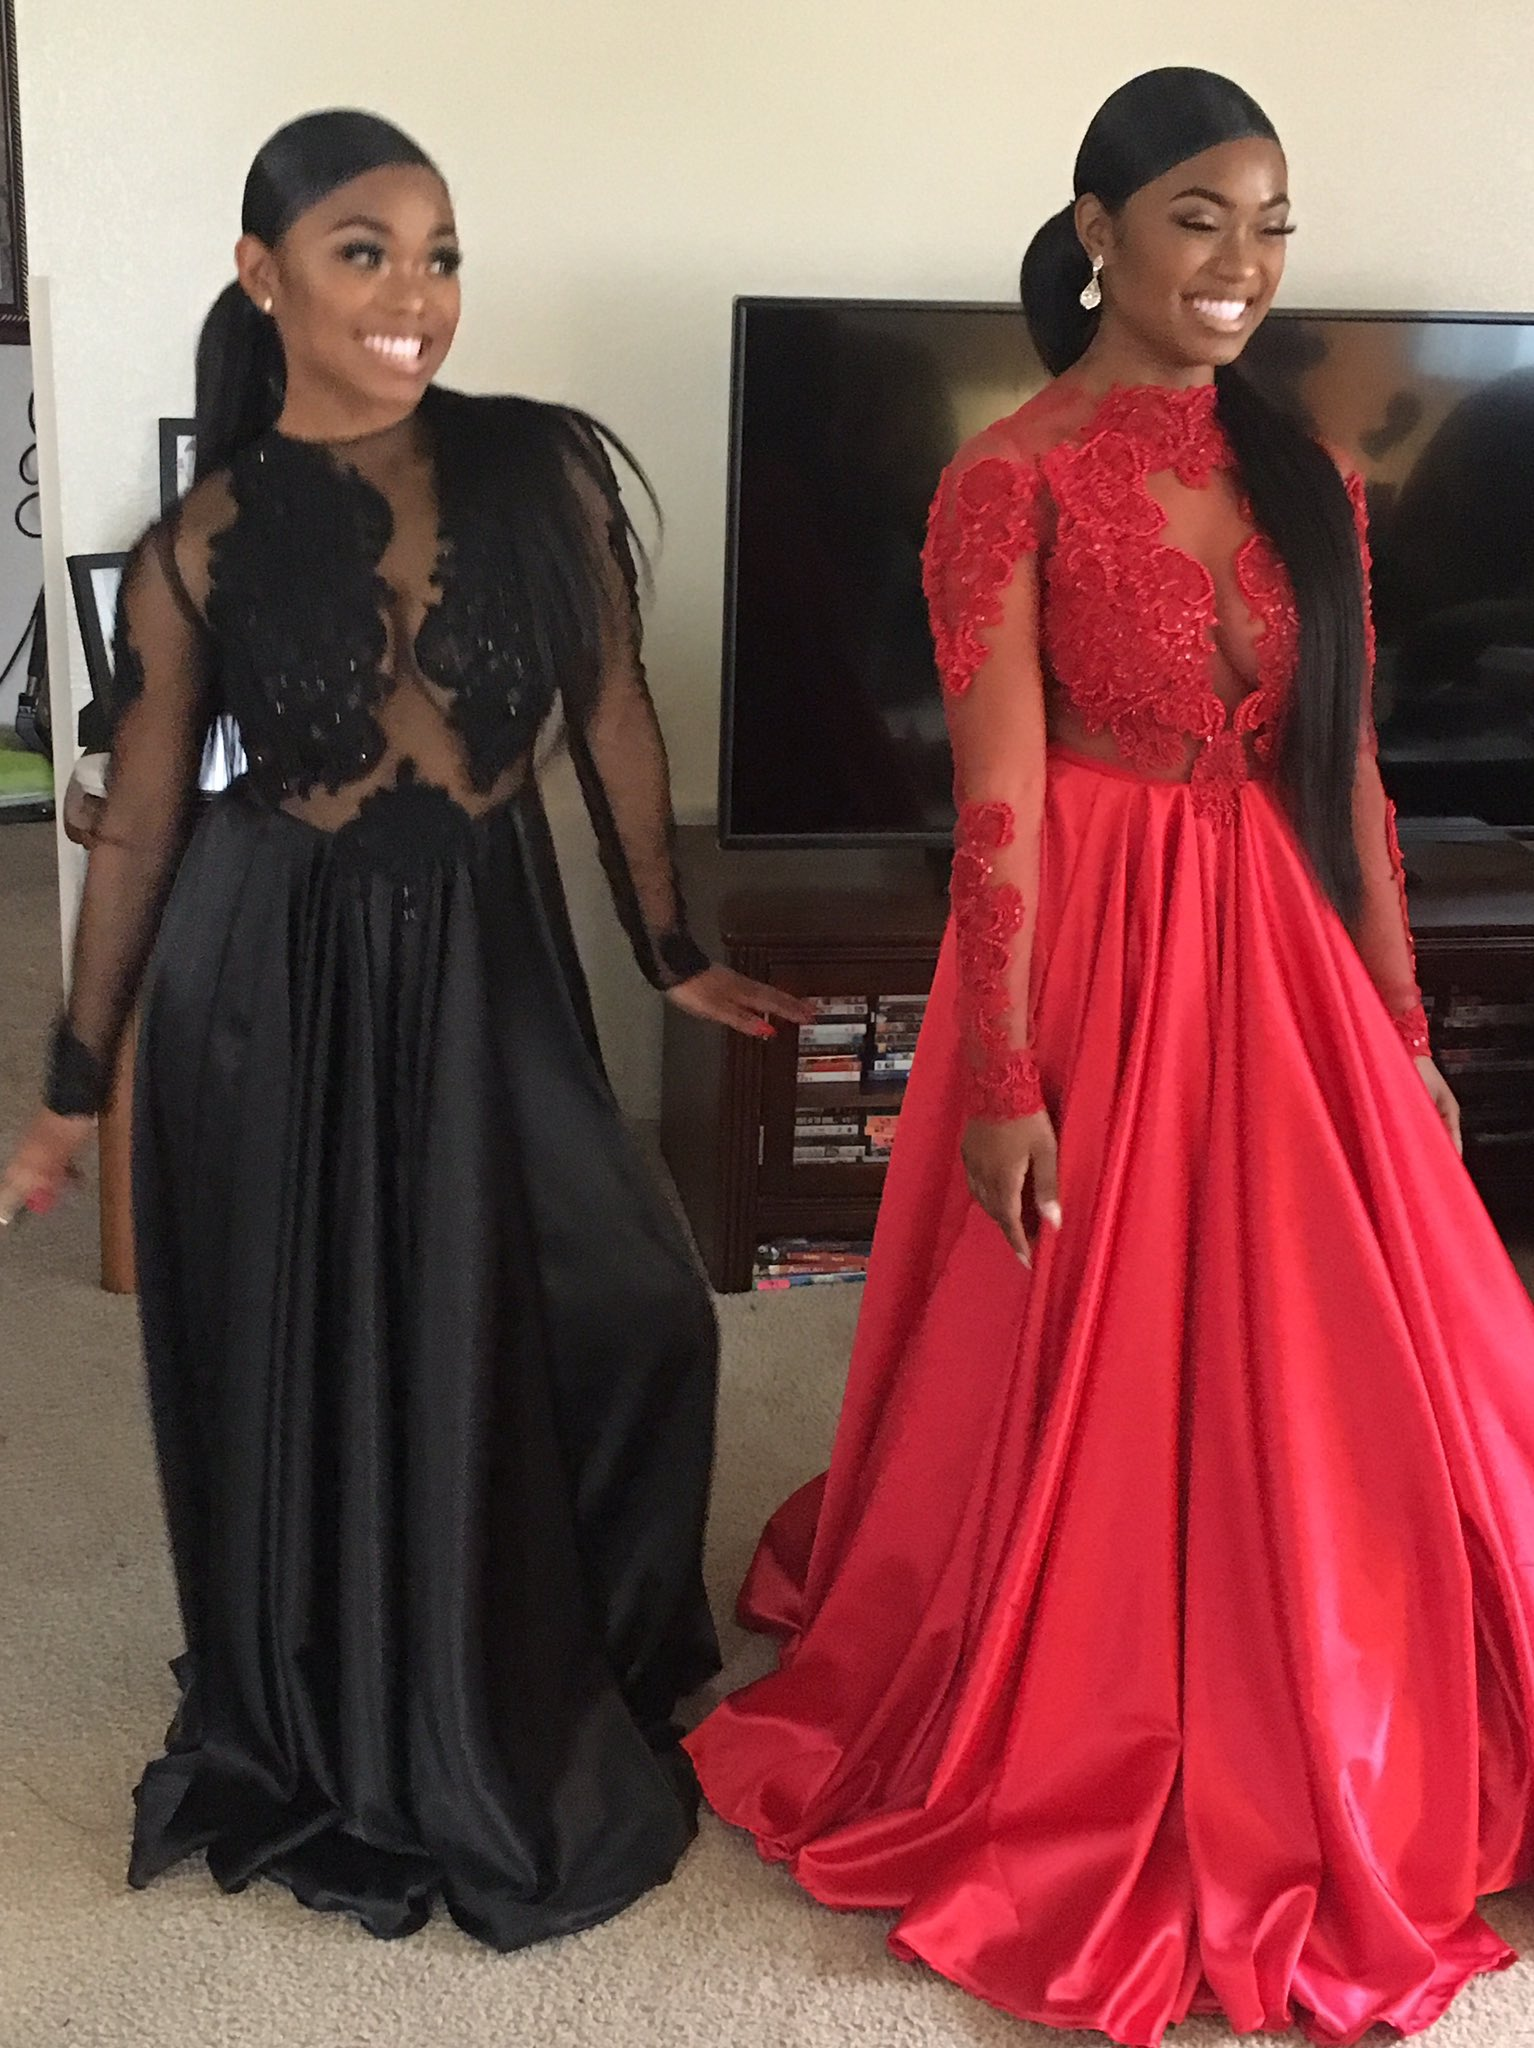 cleopatra dues on twitter quotsister sister �� prom2k17�